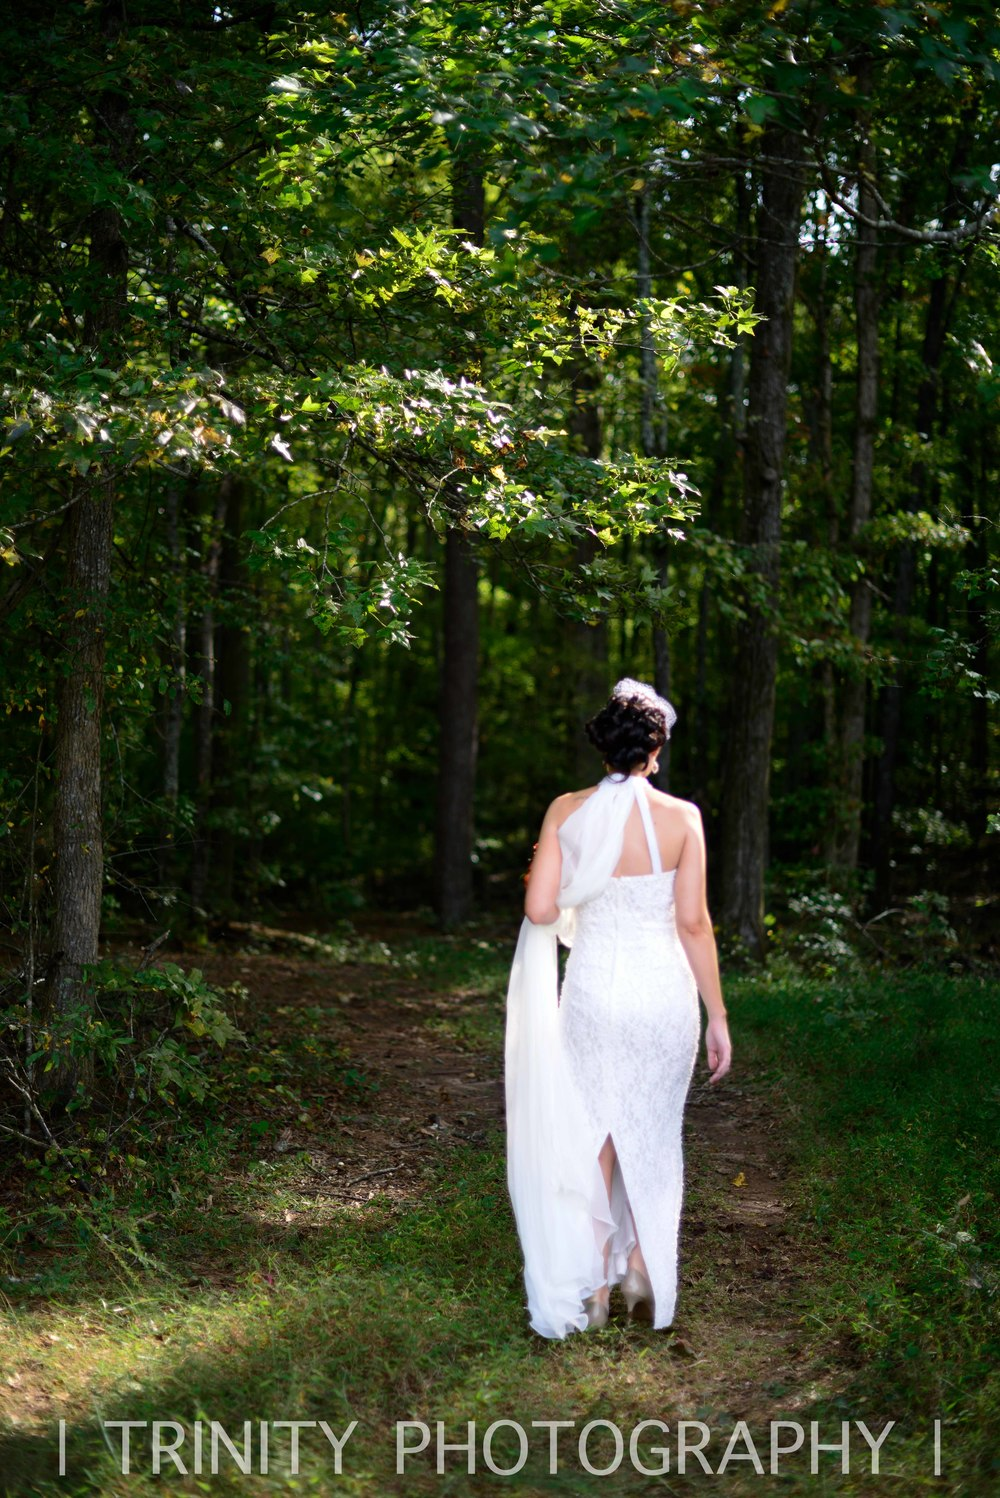 Walking to her Wedding in the Woods